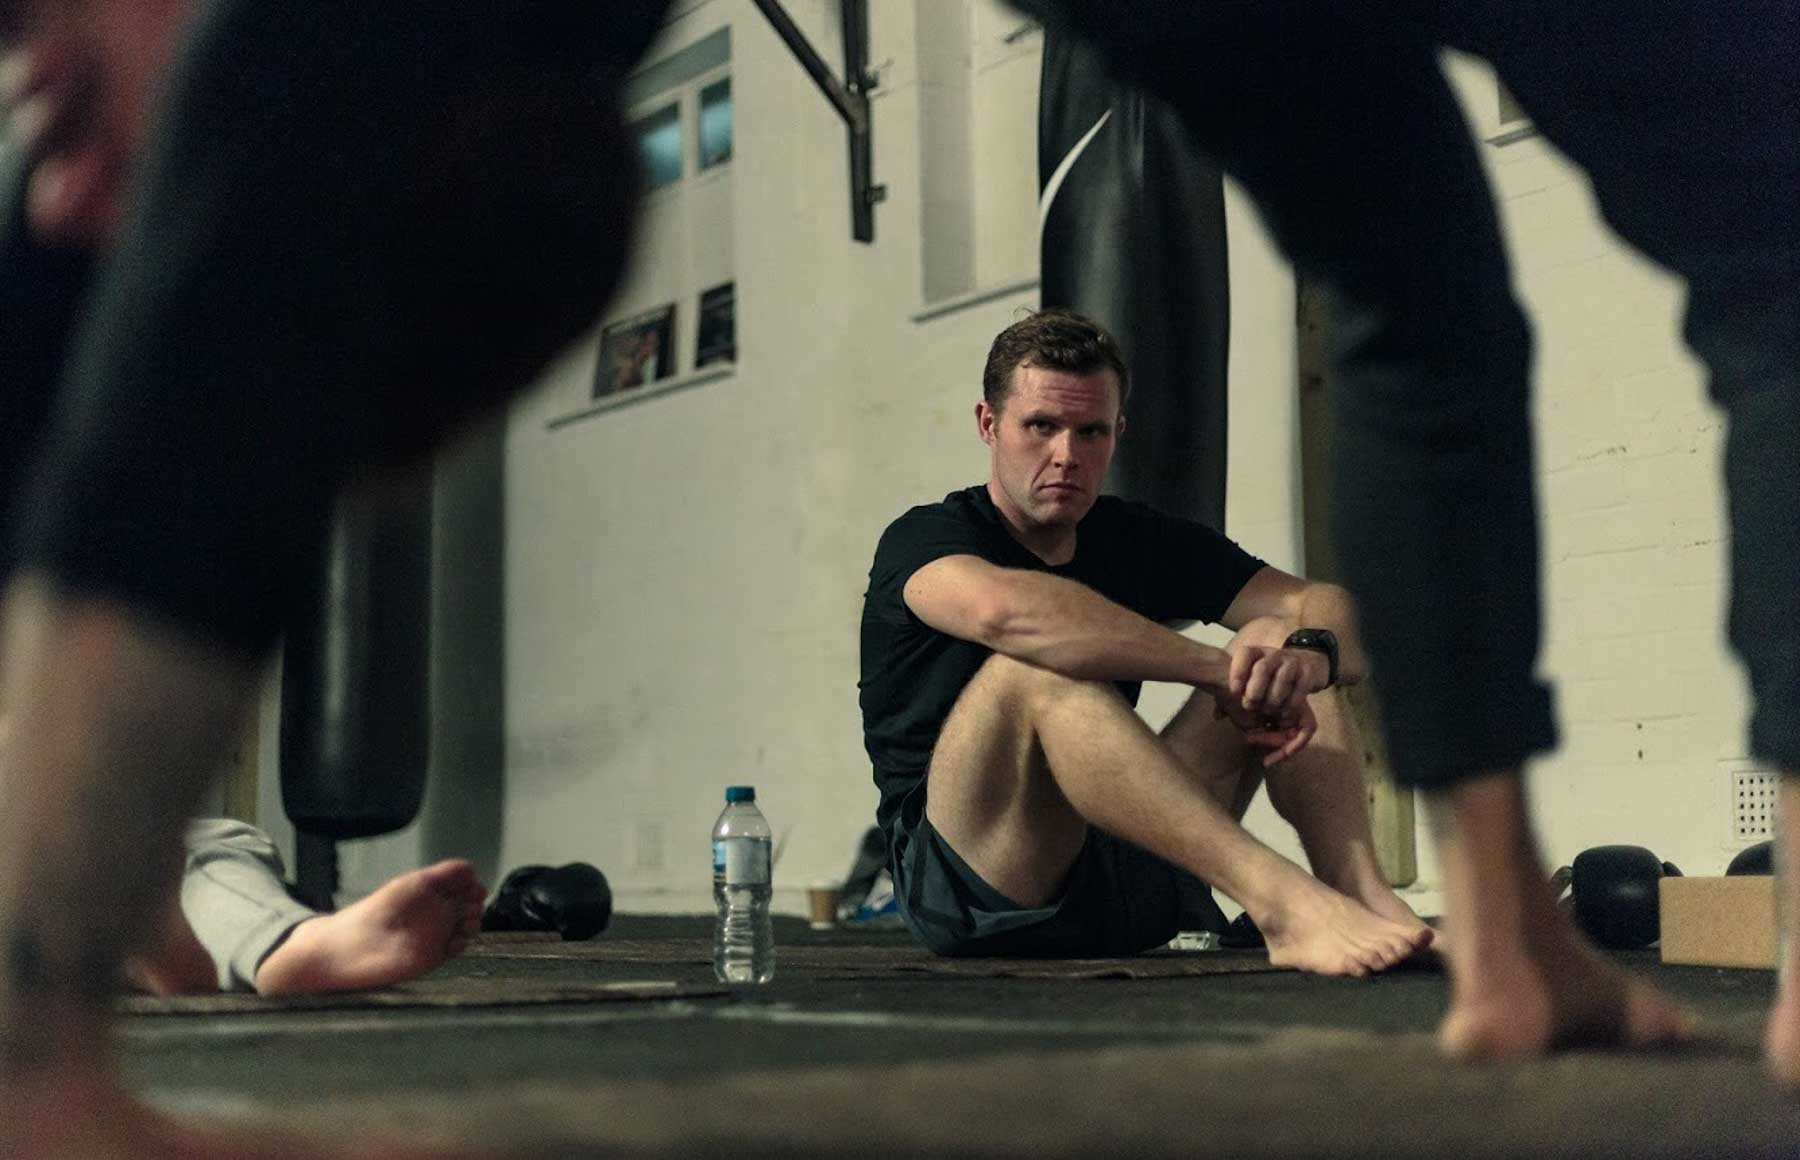 Man observing a yoga teacher in a boxing gym